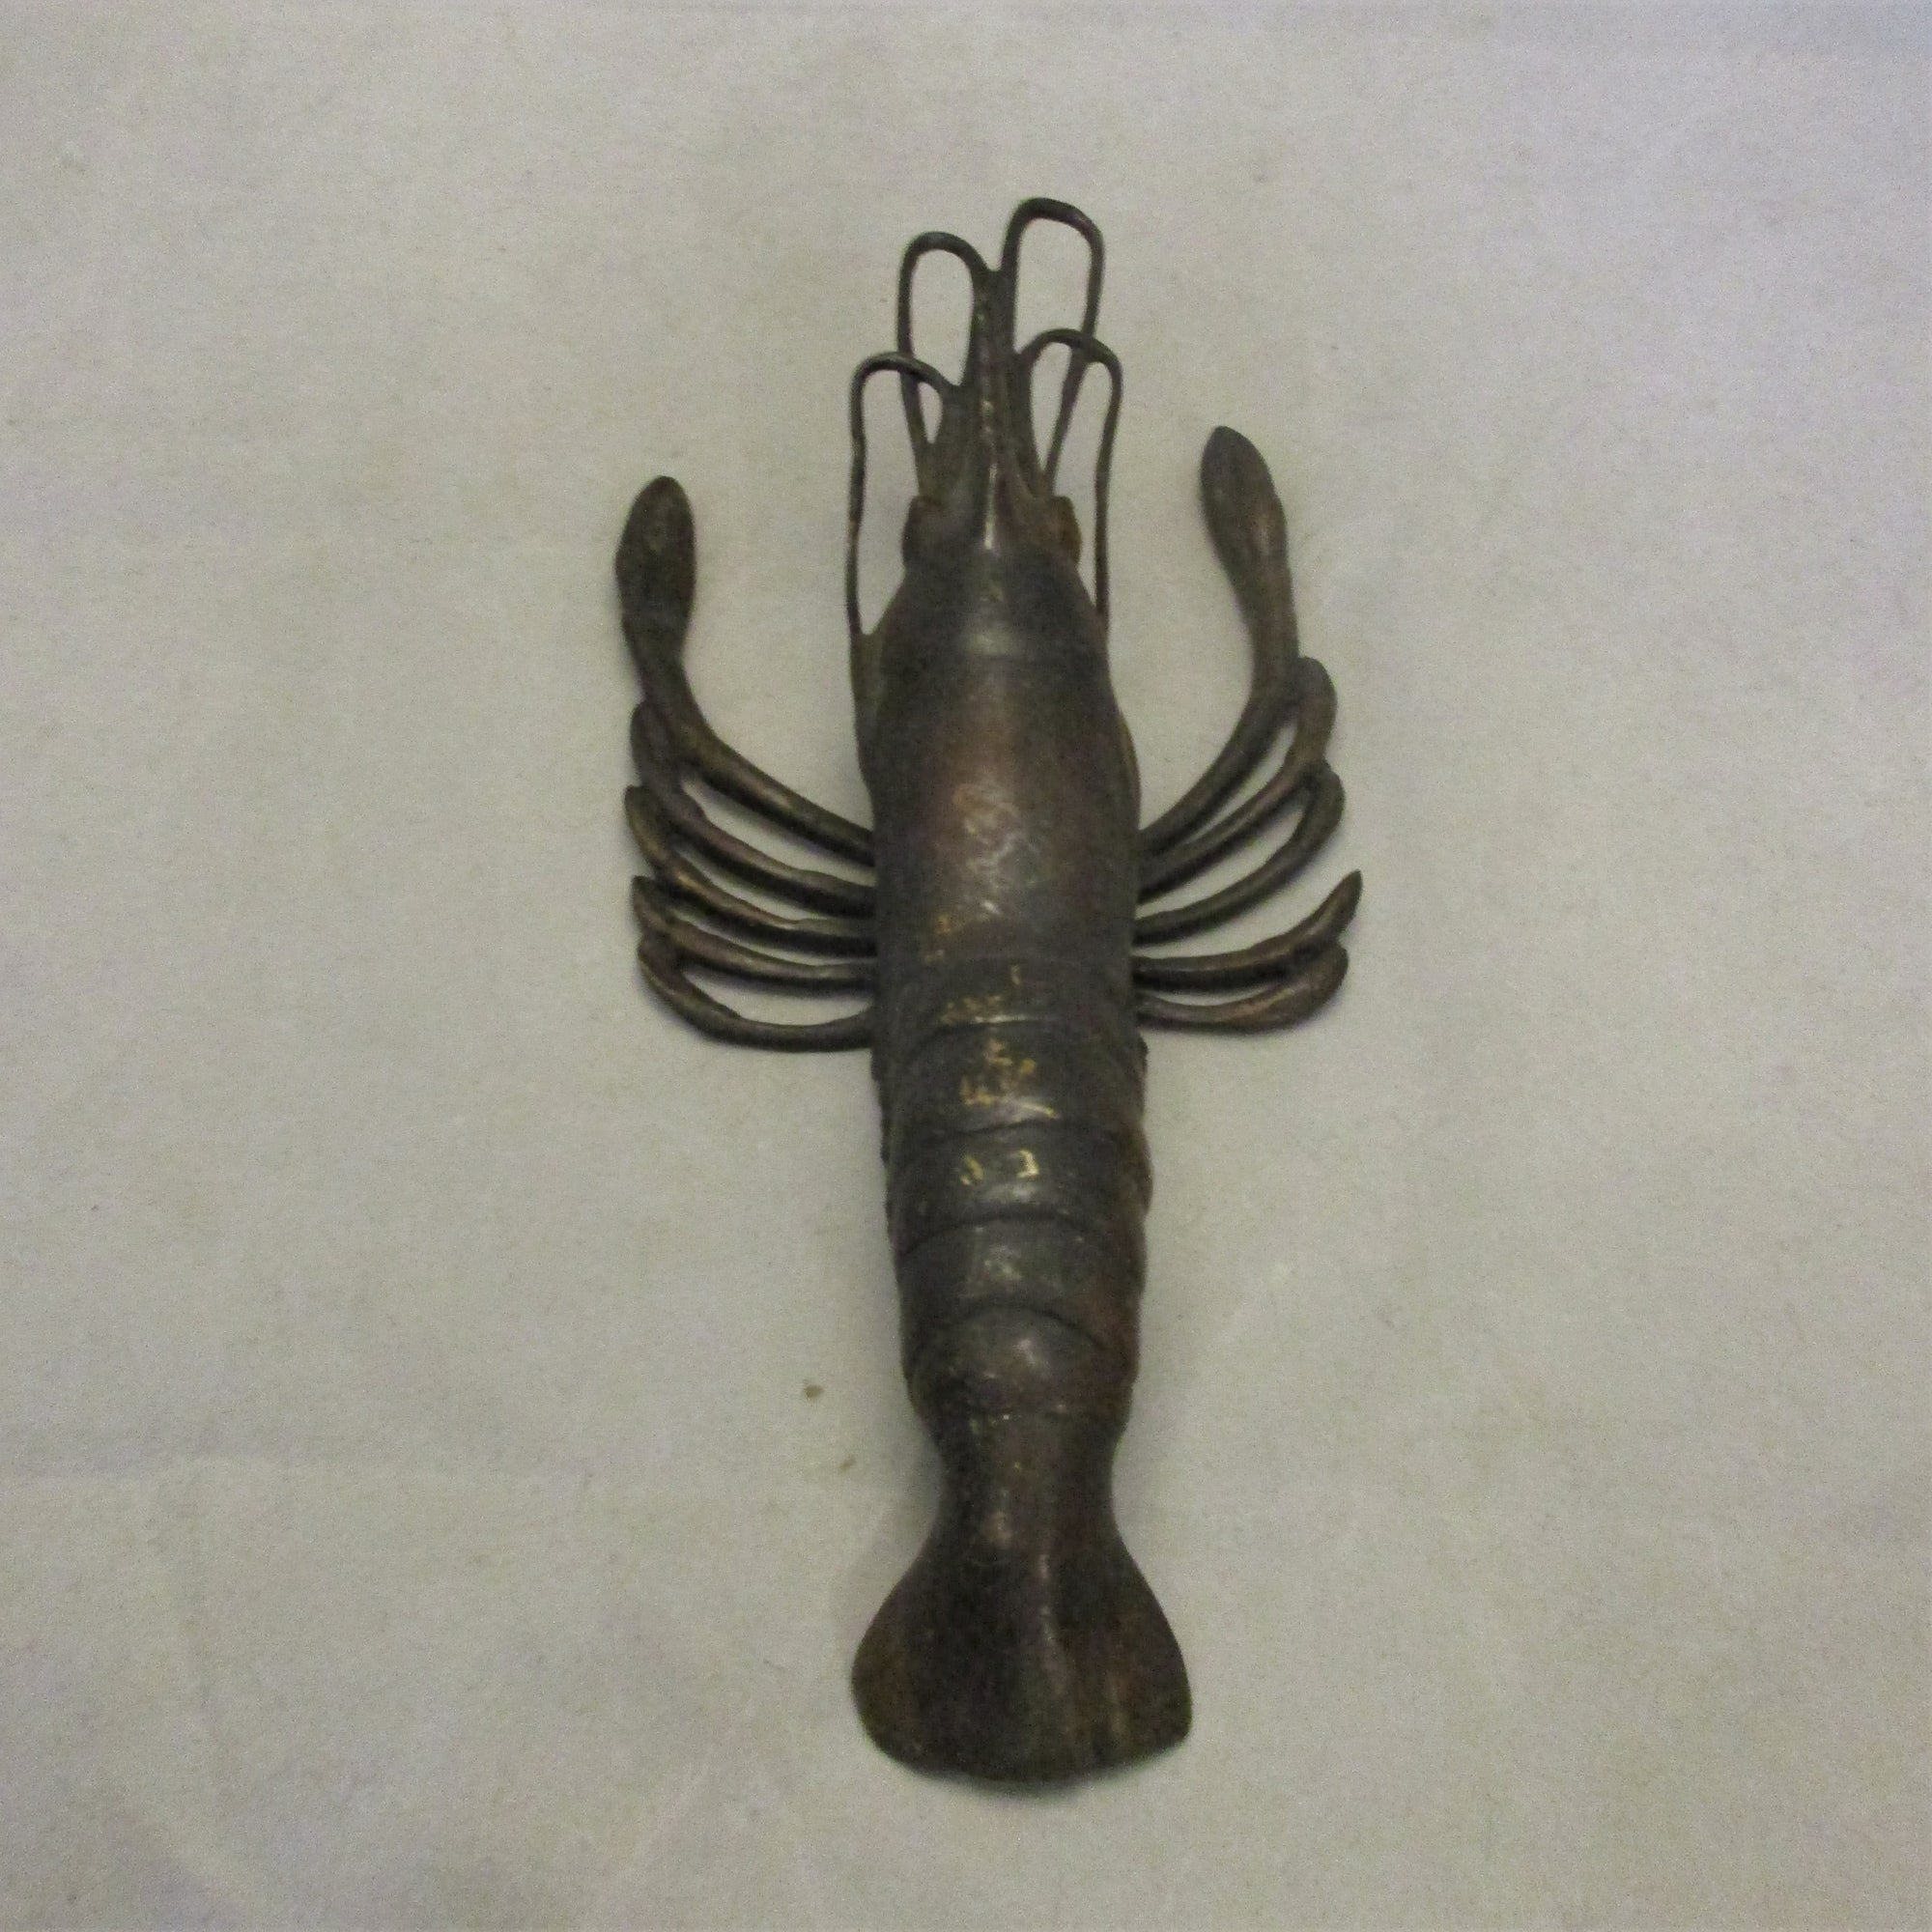 Bronze Statue In The Form Of A Crustacean Antique c.1900.